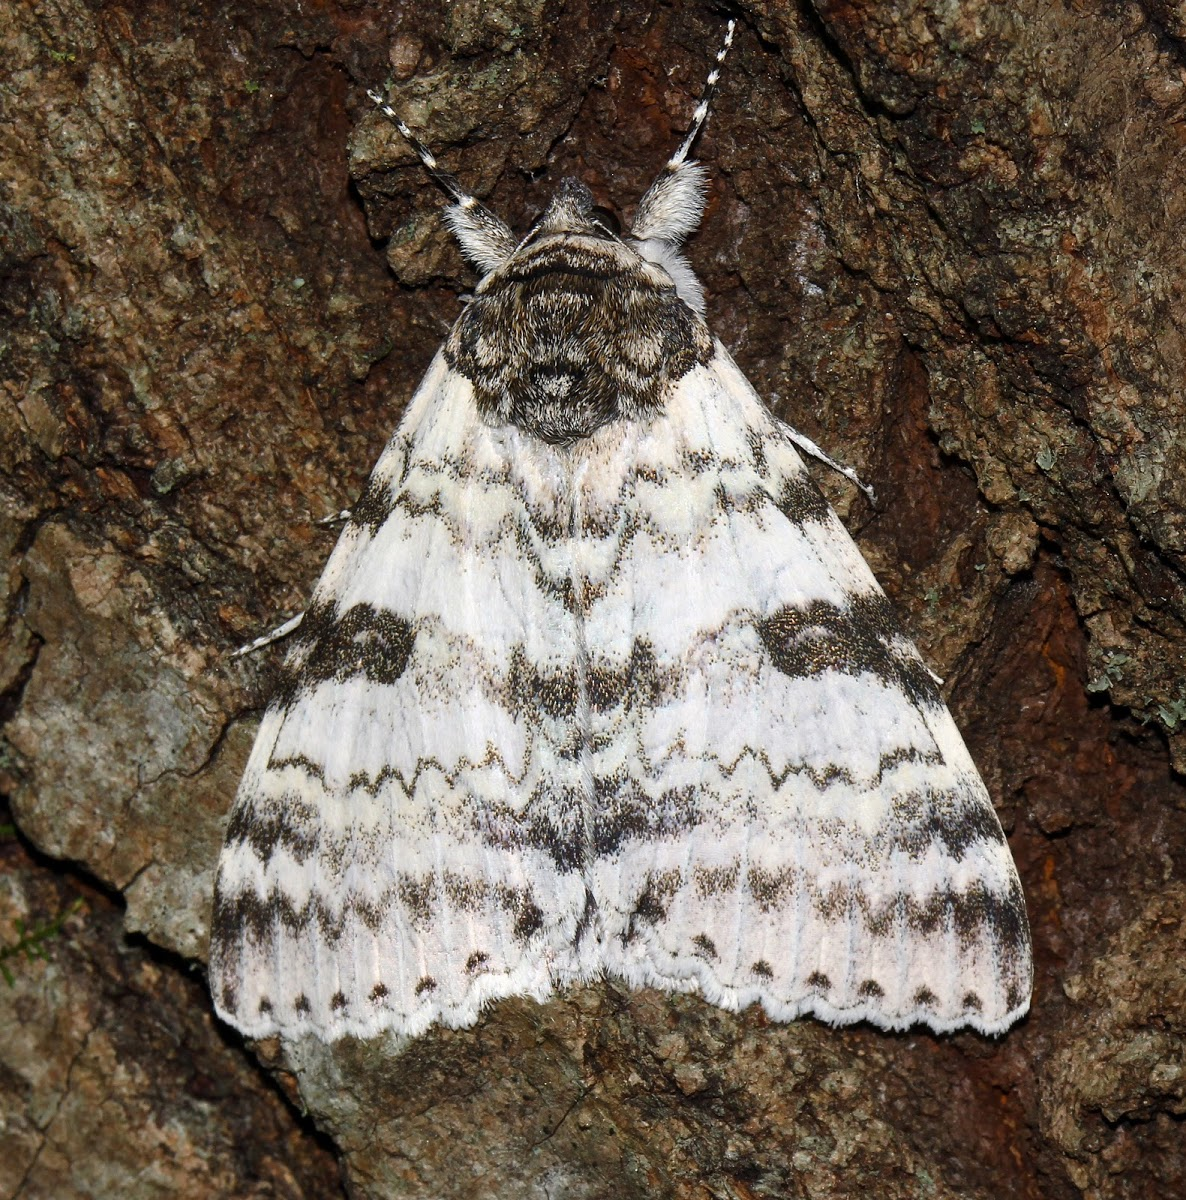 White Underwing (Catocala relicta), spotted by Project Noah user TomElliott.